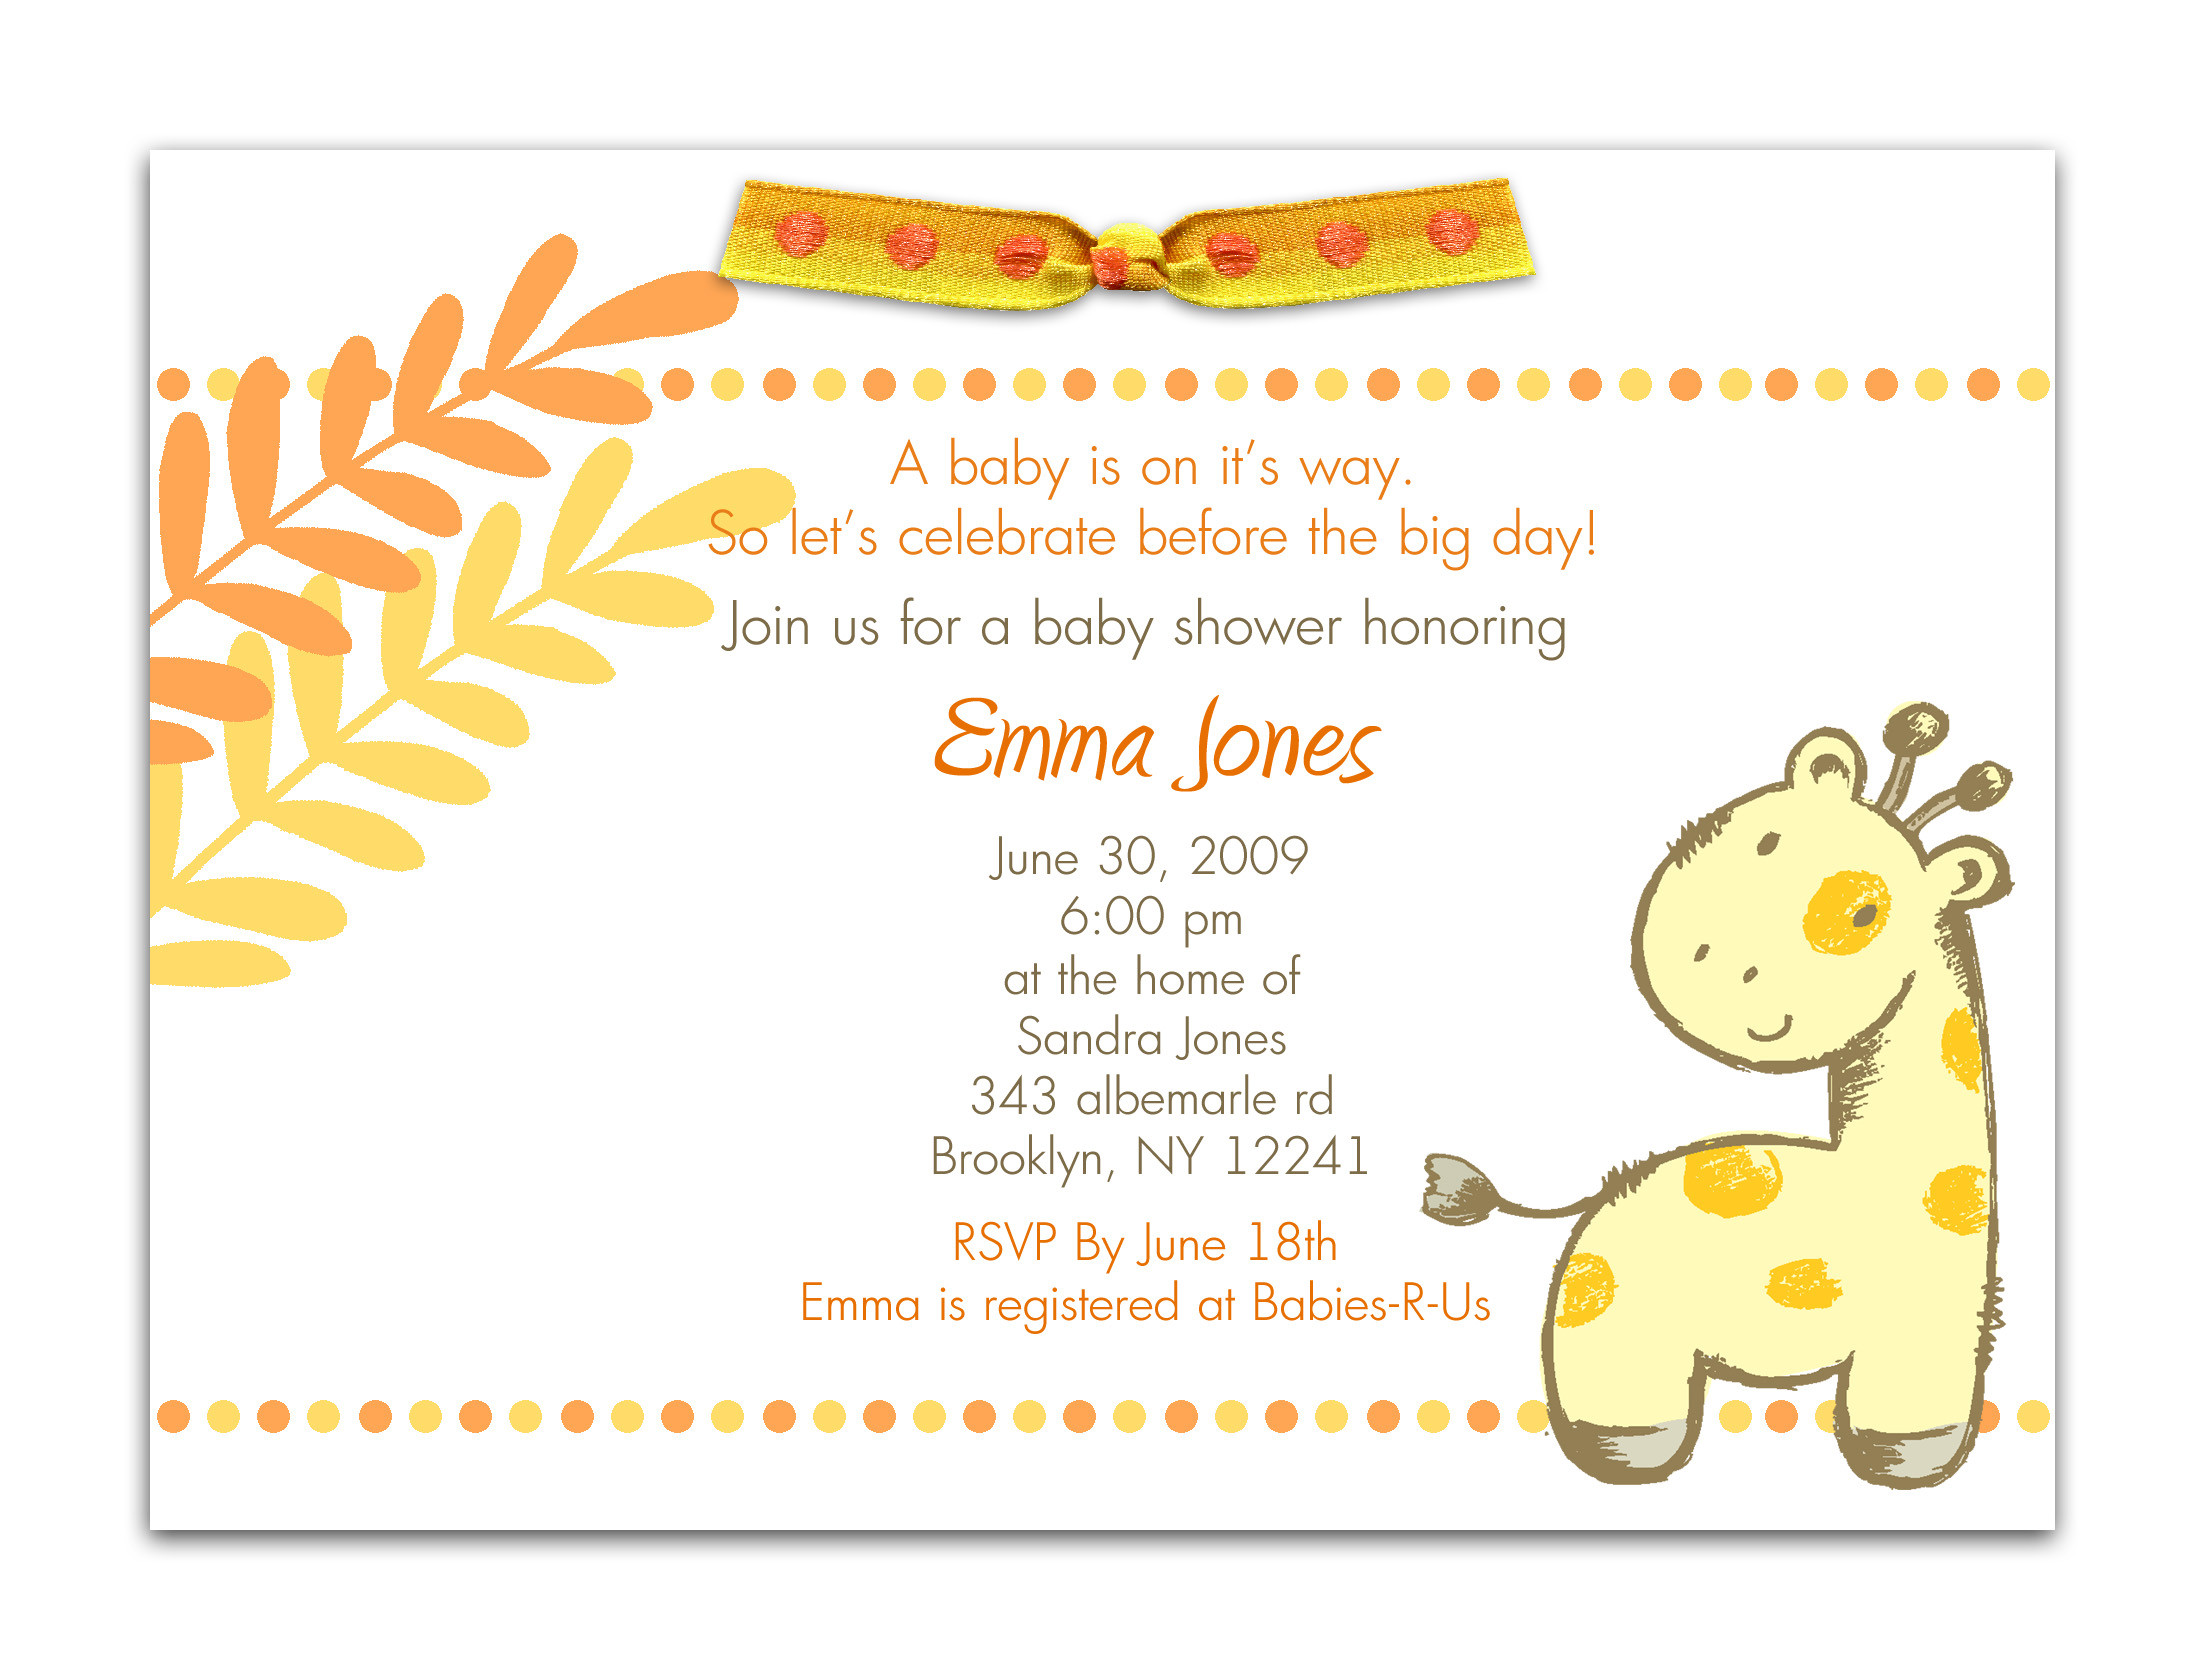 Full Size of Baby Shower:delightful Baby Shower Invitation Wording Picture Designs Para Baby Shower Recuerdos De Baby Shower Baby Shower Verses Baby Shower Wishing Well Baby Favors Cheap Baby Shower Favors